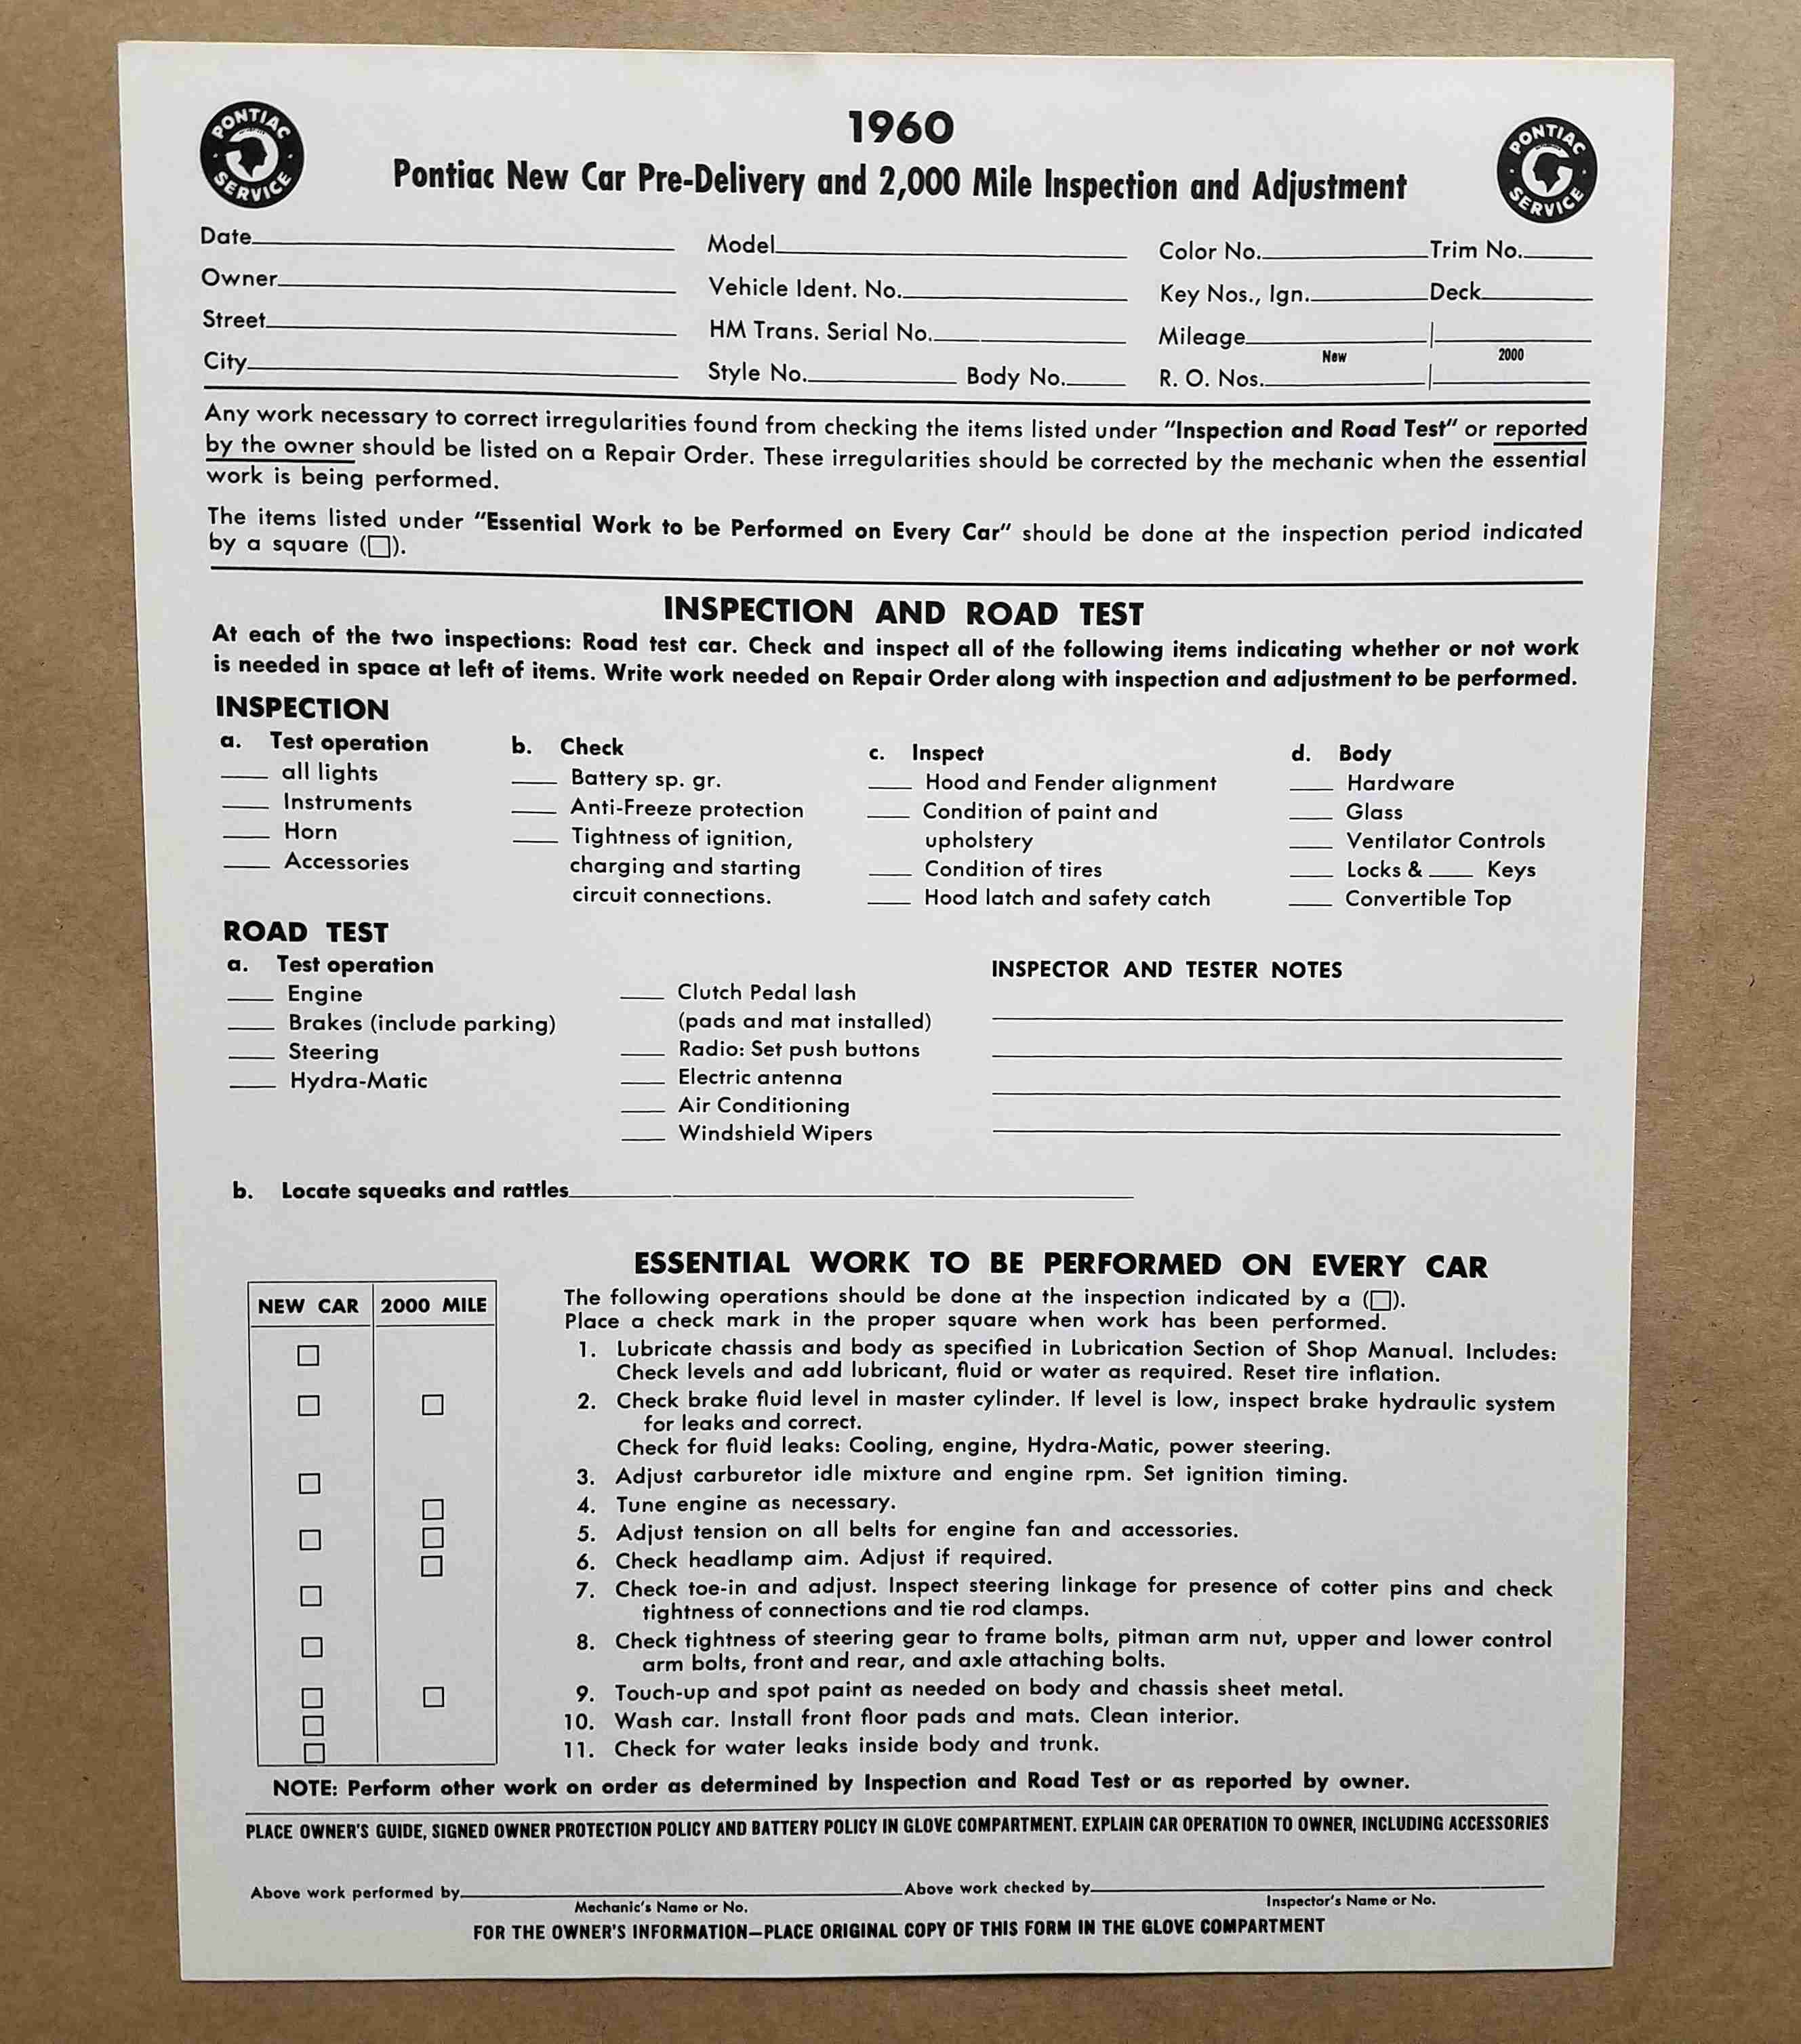 1960 New Vehicle Pre-Delivery Sheet